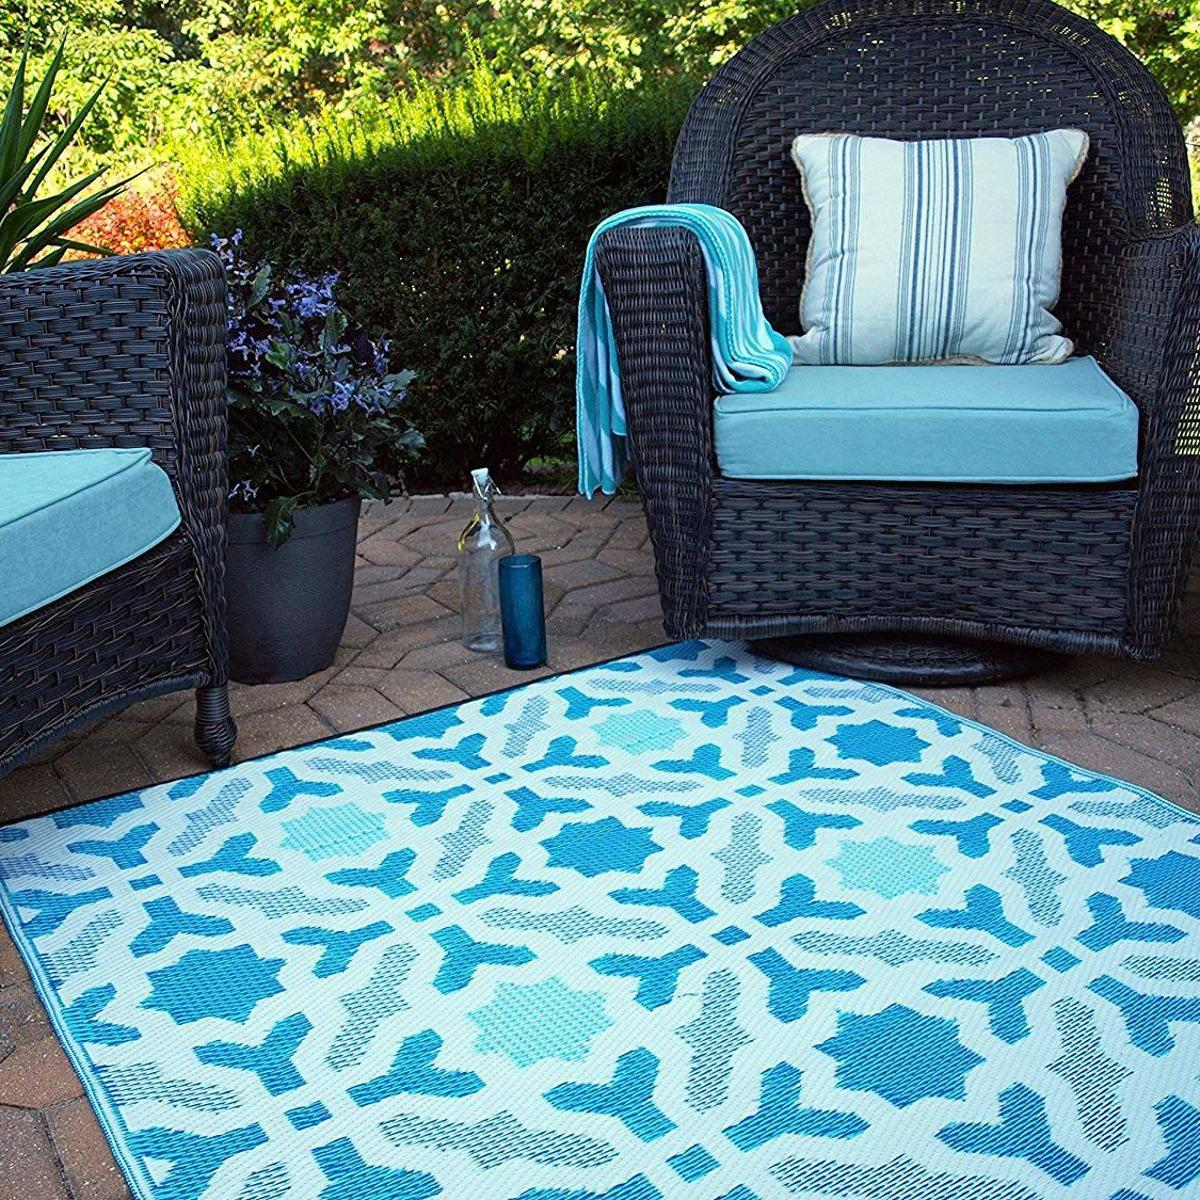 Outdoor Rugs Will E Up Your Patio